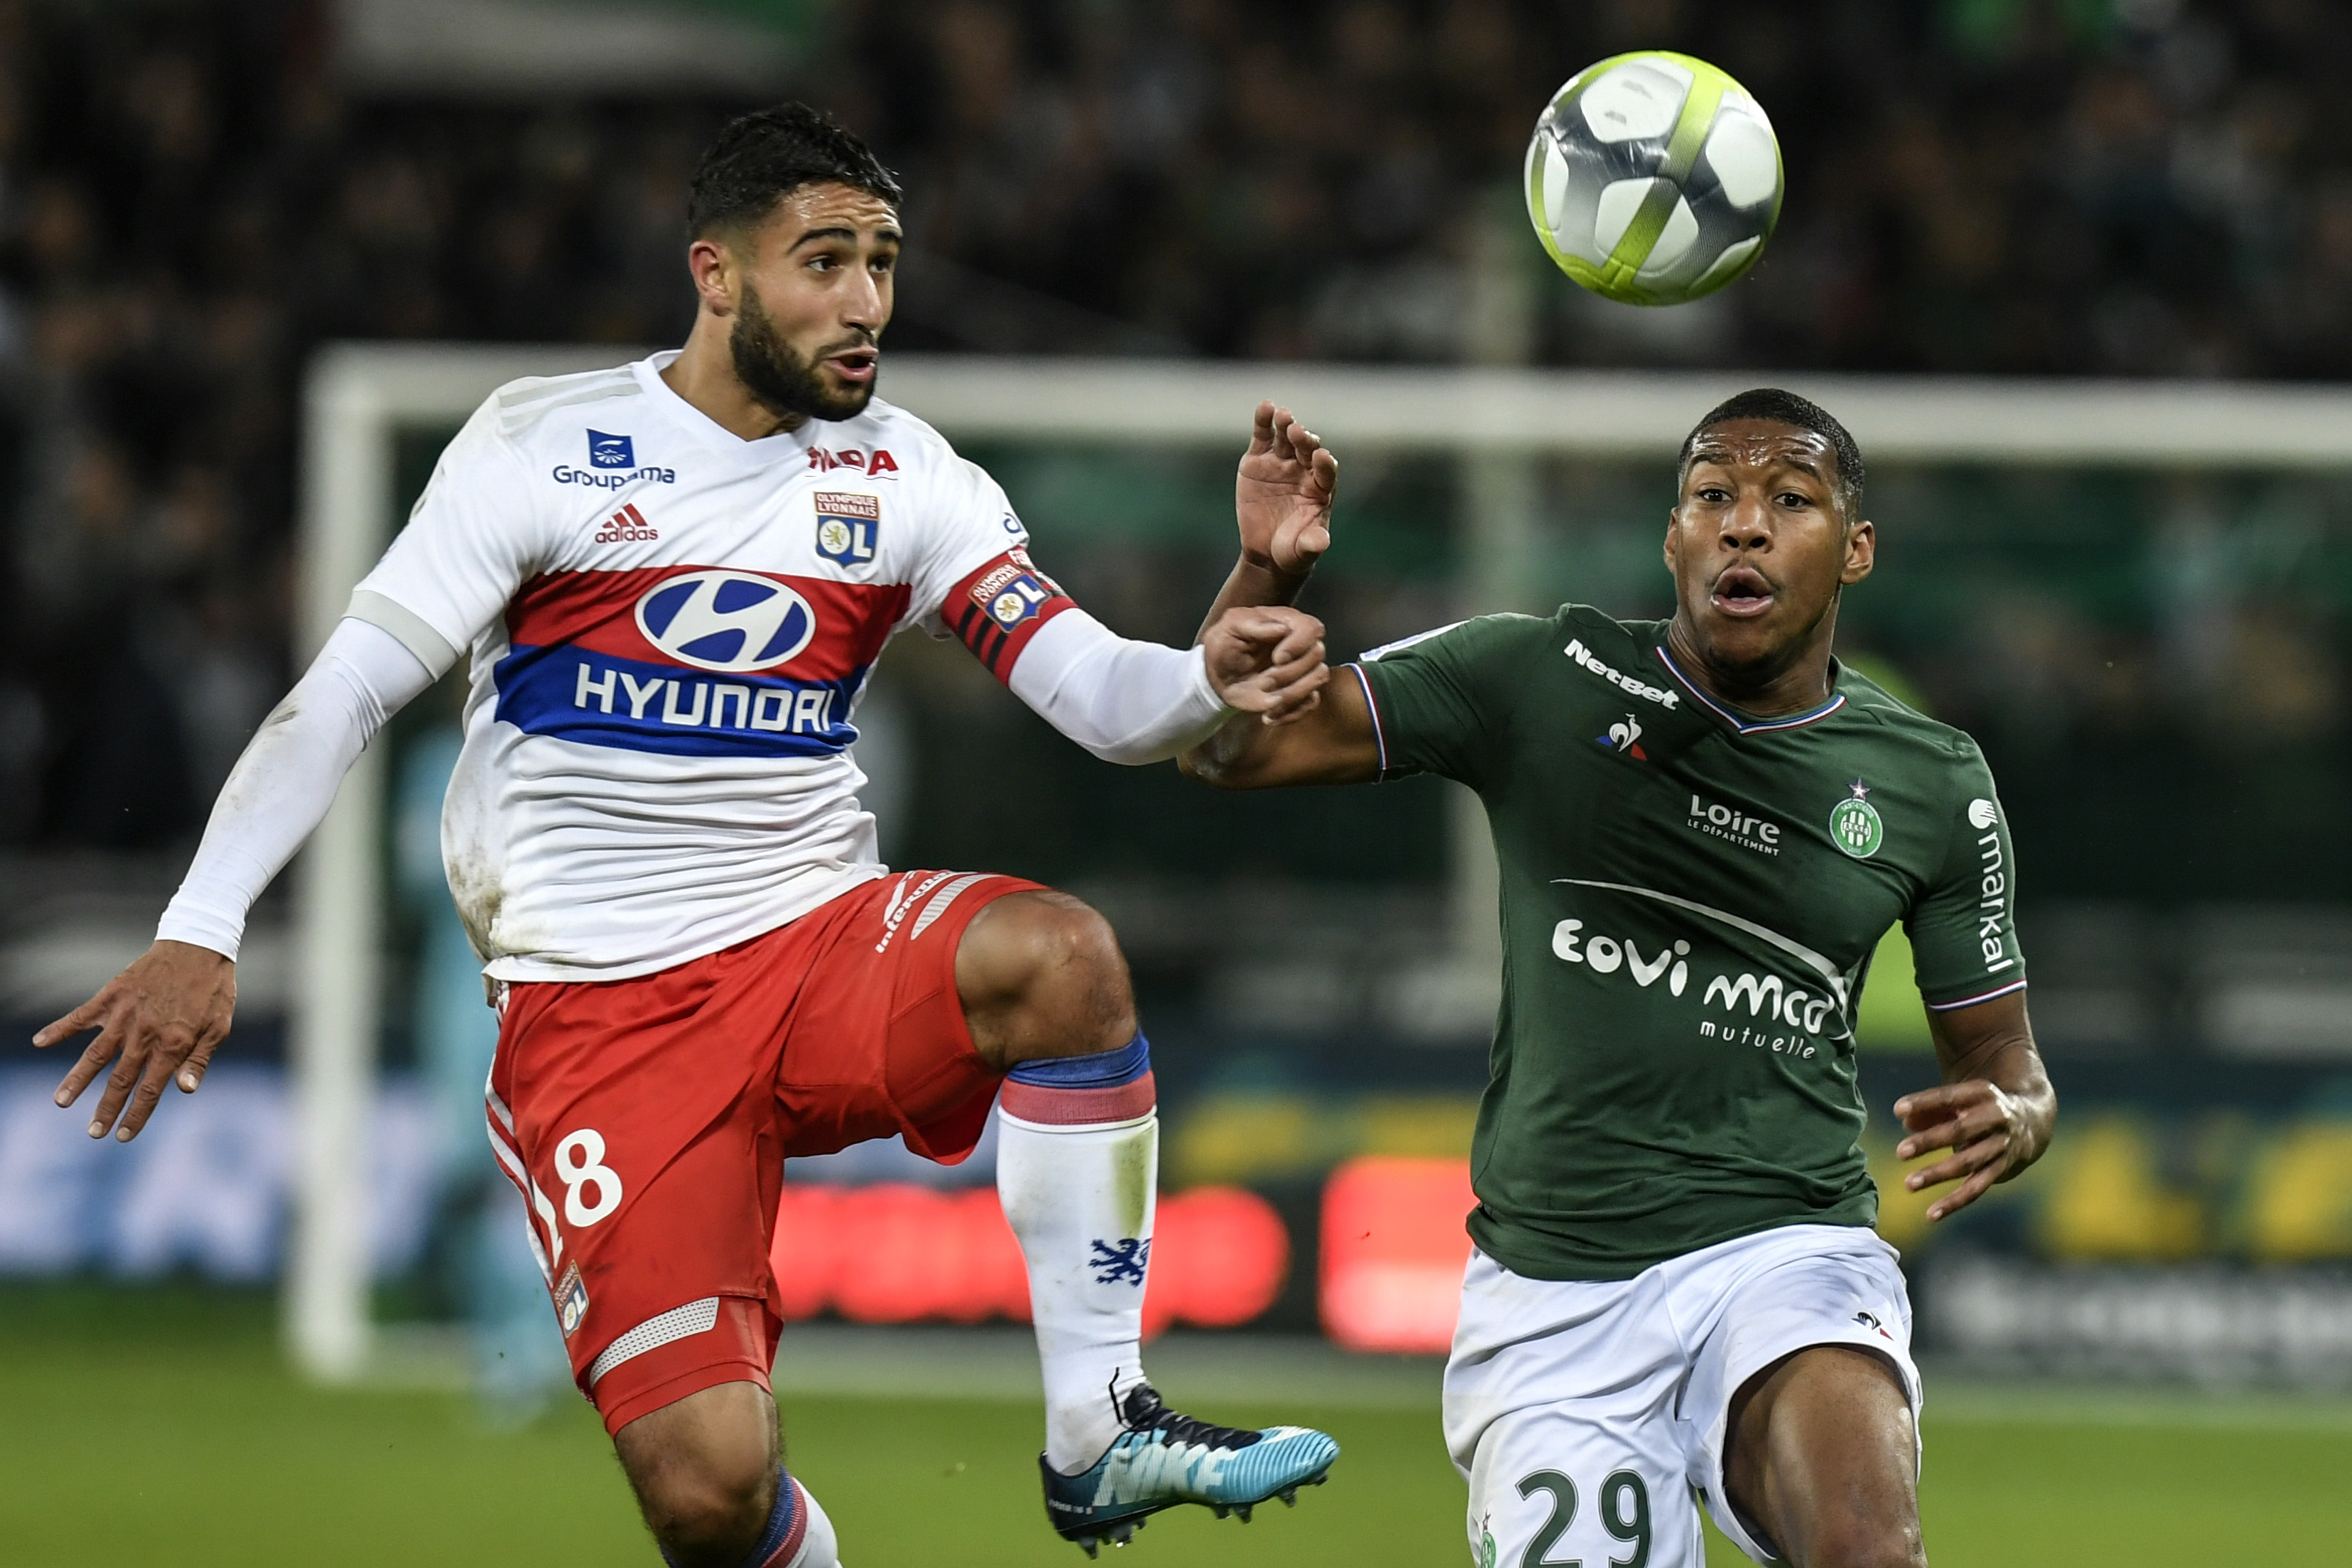 [Ligue 1] Saint-Etienne – Lyon : les notes